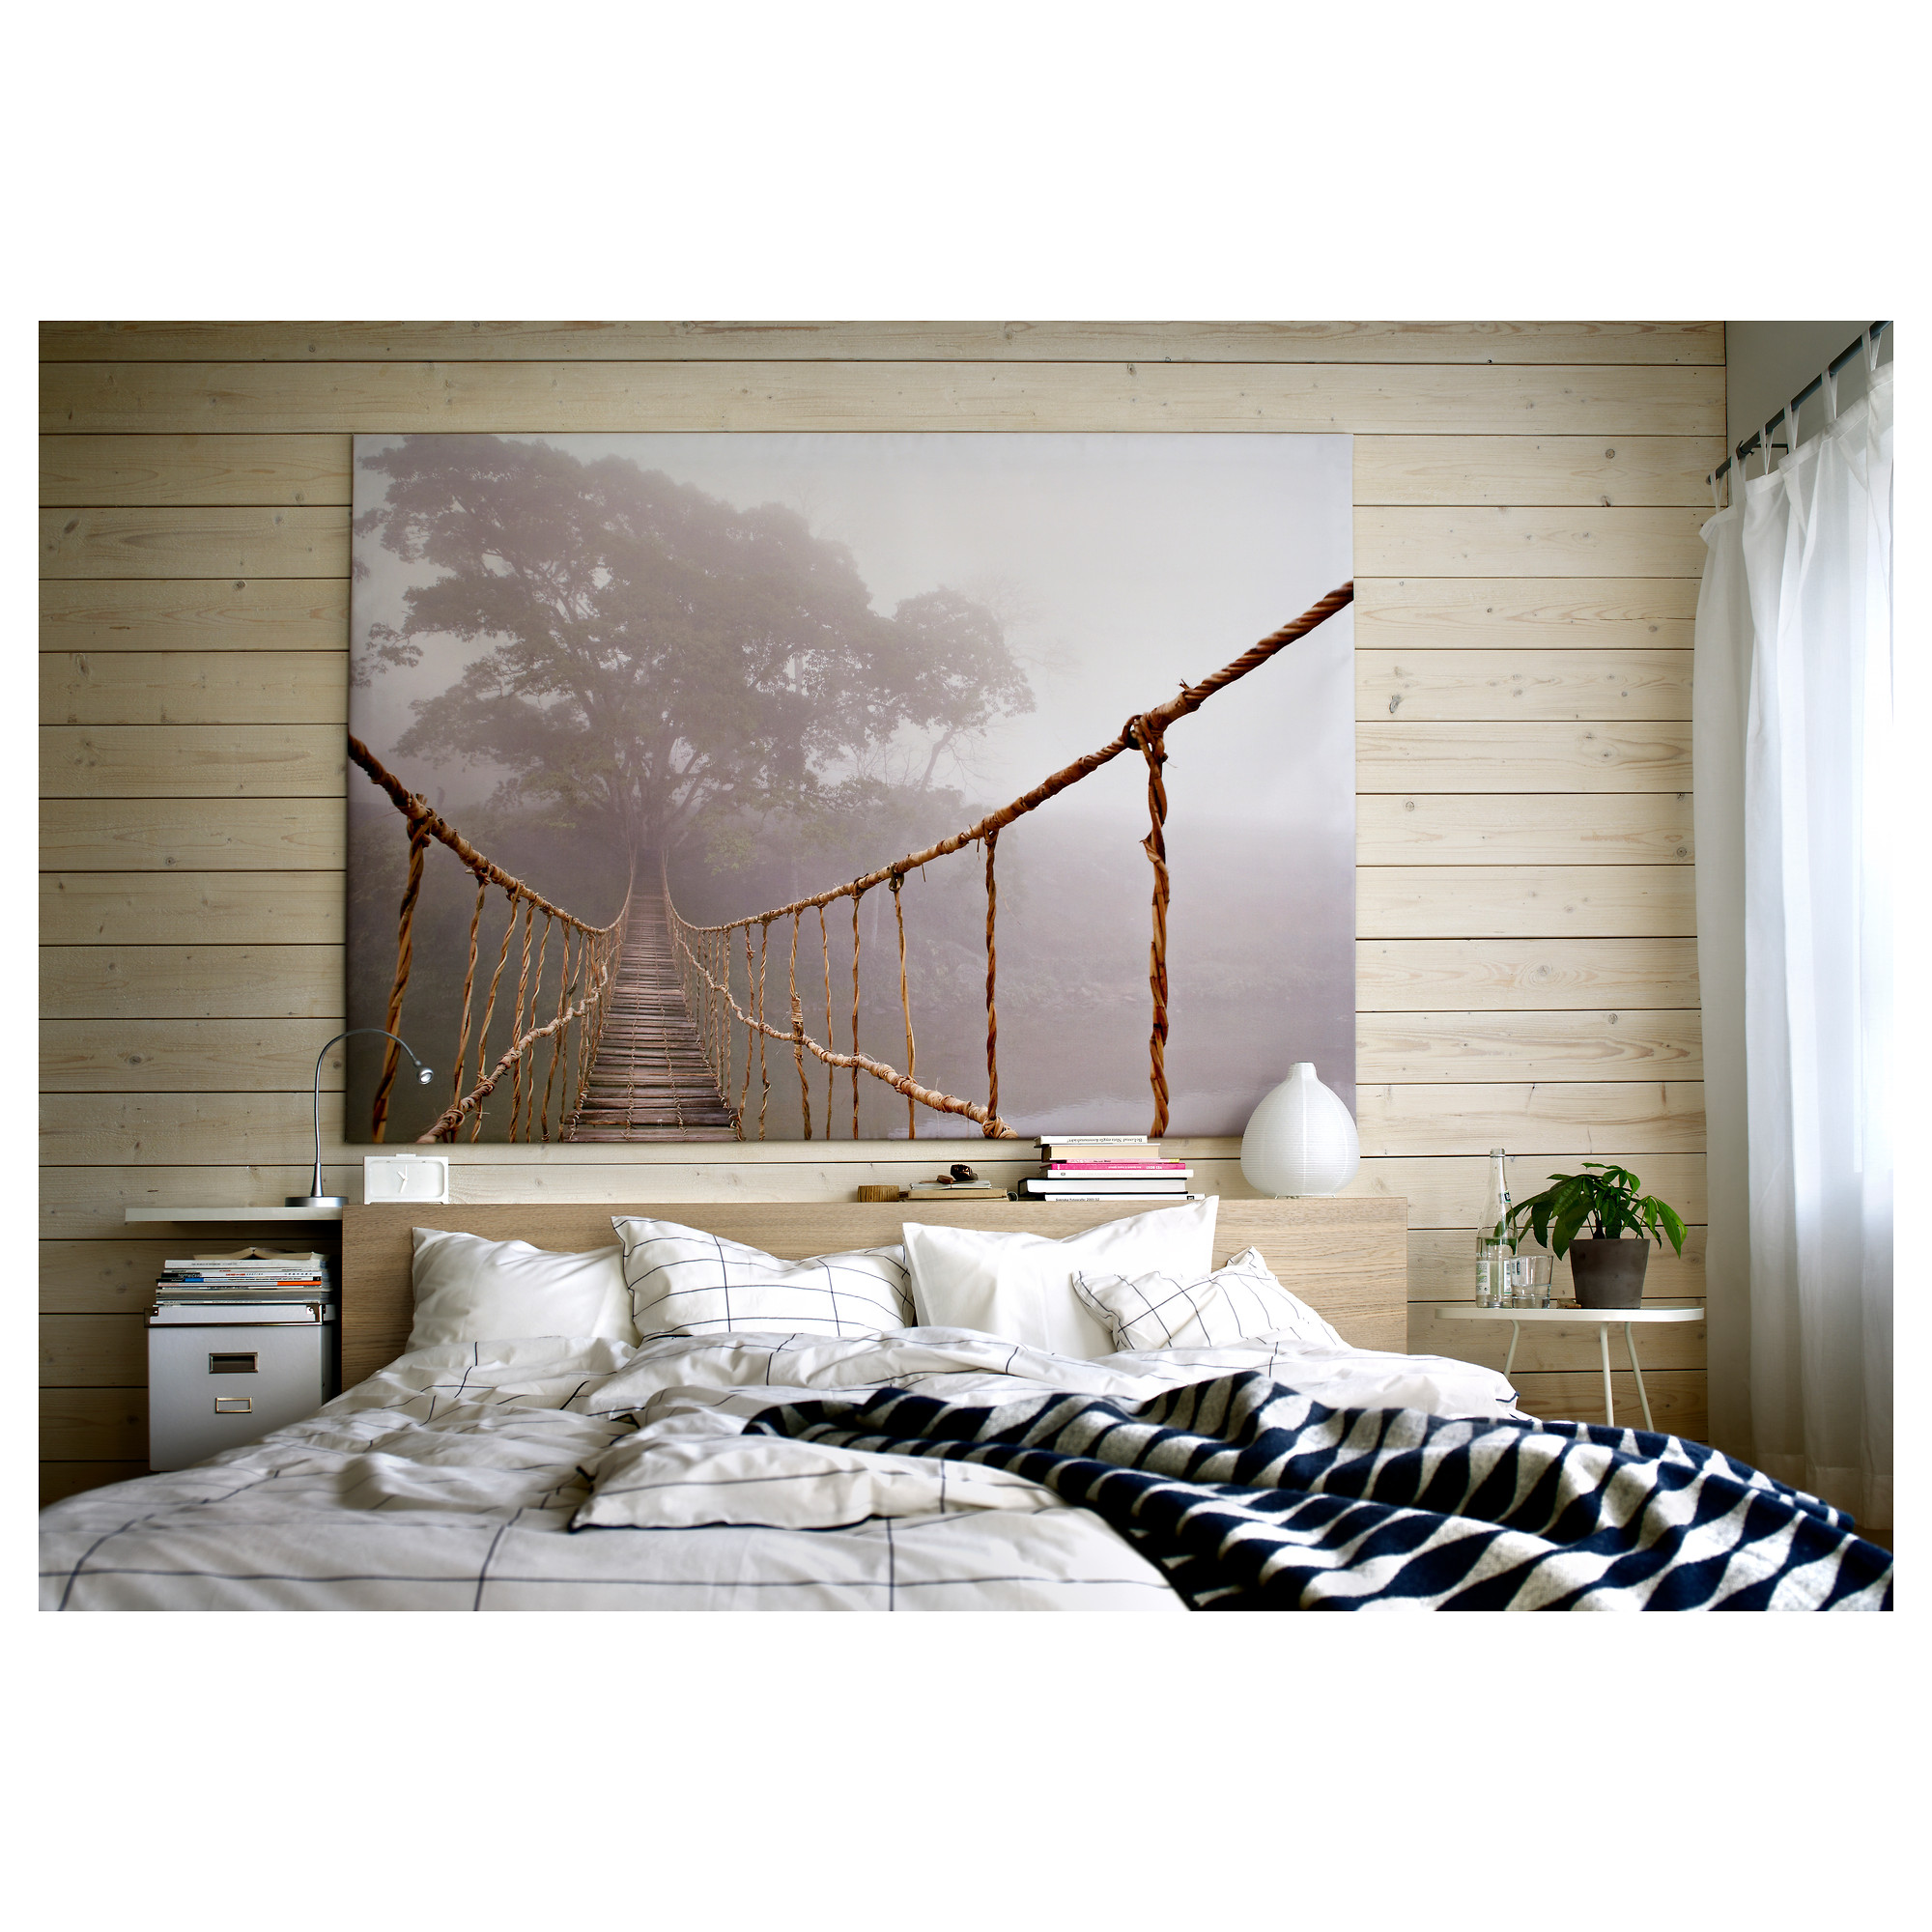 ikea wall art bridge vilshult picture ikea wall art pinterest ikea and pictures with. Black Bedroom Furniture Sets. Home Design Ideas